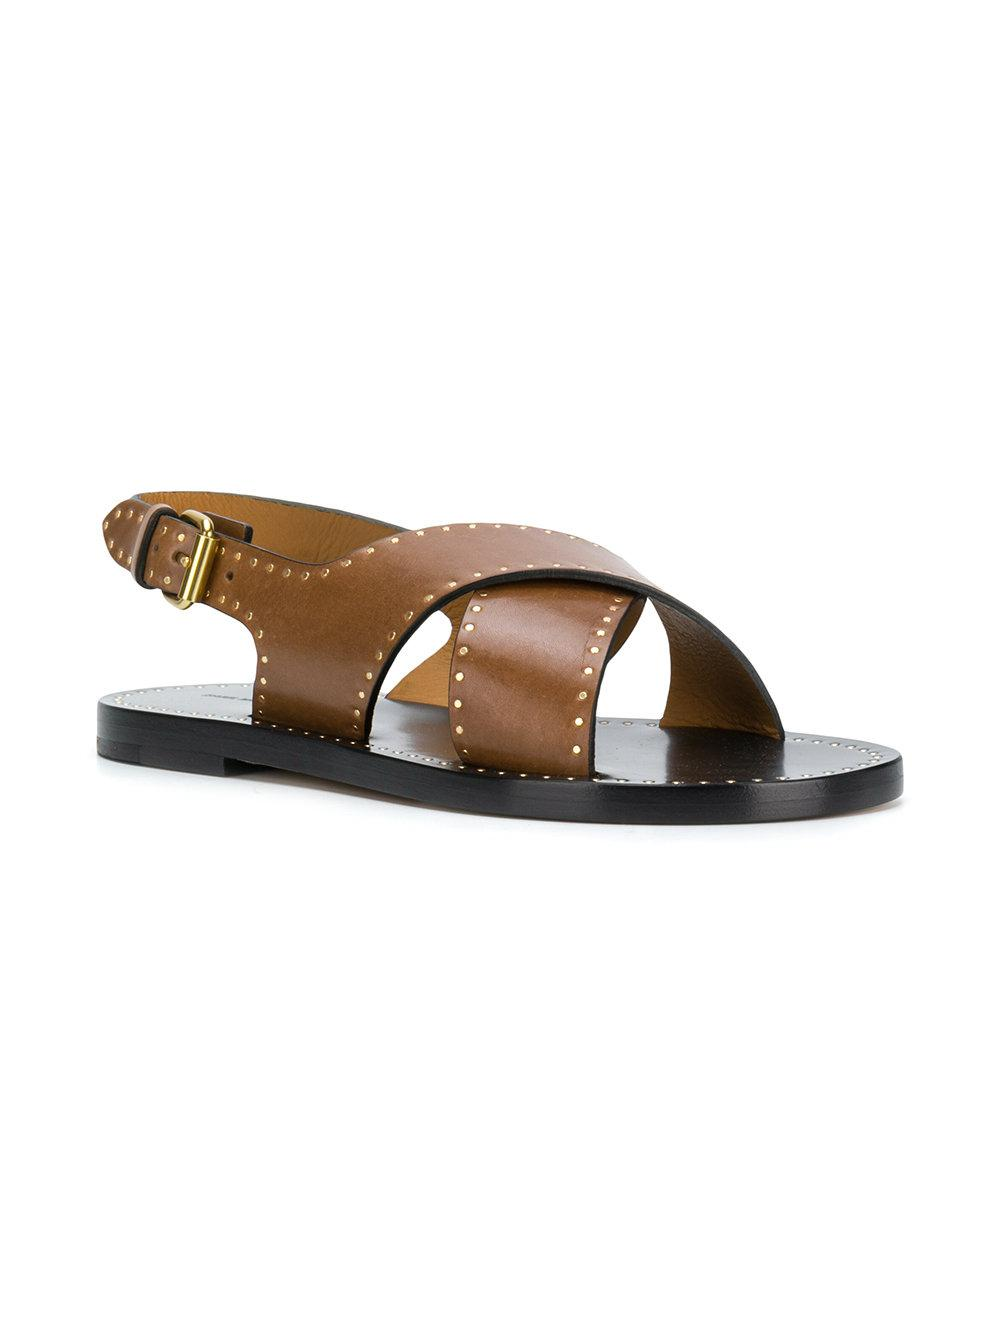 Isabel Marant Women's Jane Cross Over Flat Sandals Buy Best Low Cost Online Discount New Low Cost azGboA31Qt